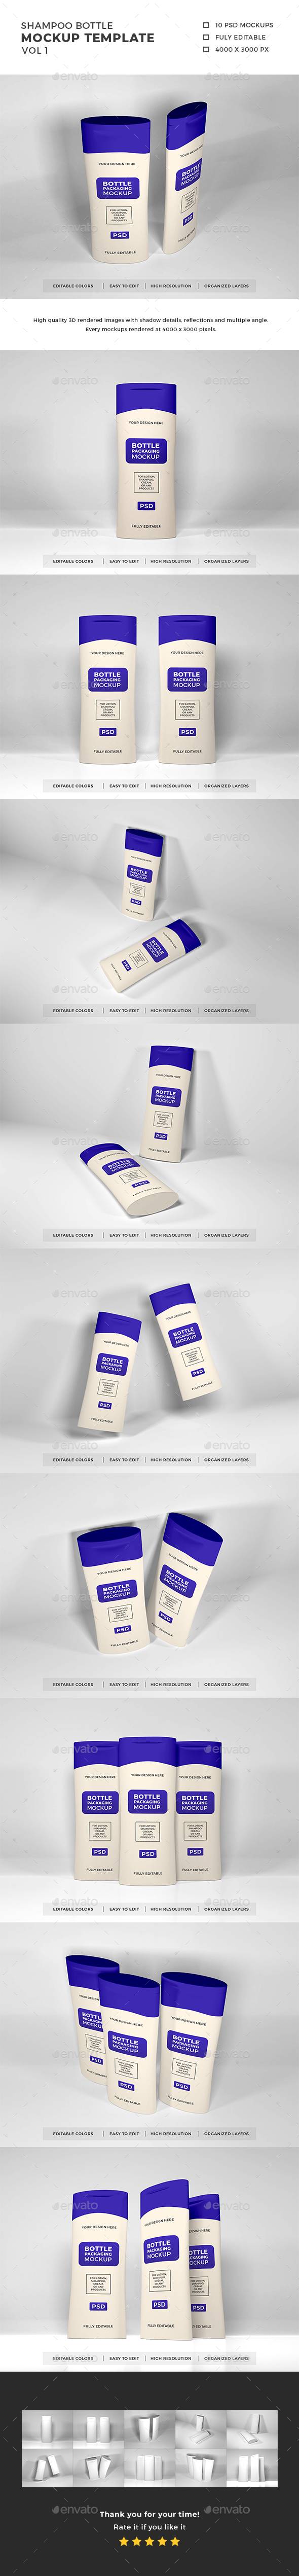 Shampoo Bottle Packaging Mockup Vol 1